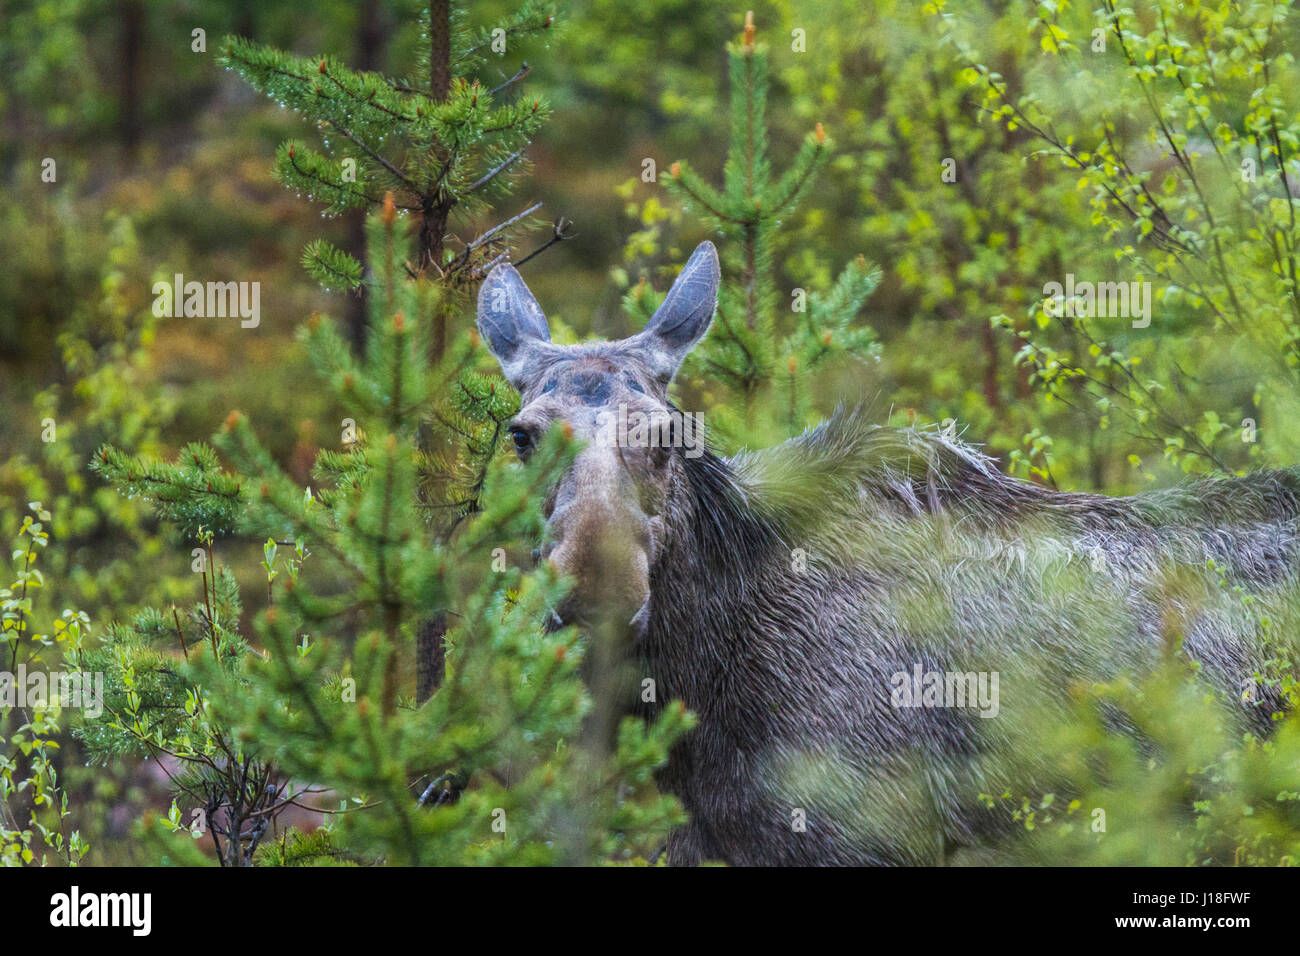 Young moose looking into the camera among birches, spruces and pine trees, Gällivare, Swedish lapland, Sweden - Stock Image